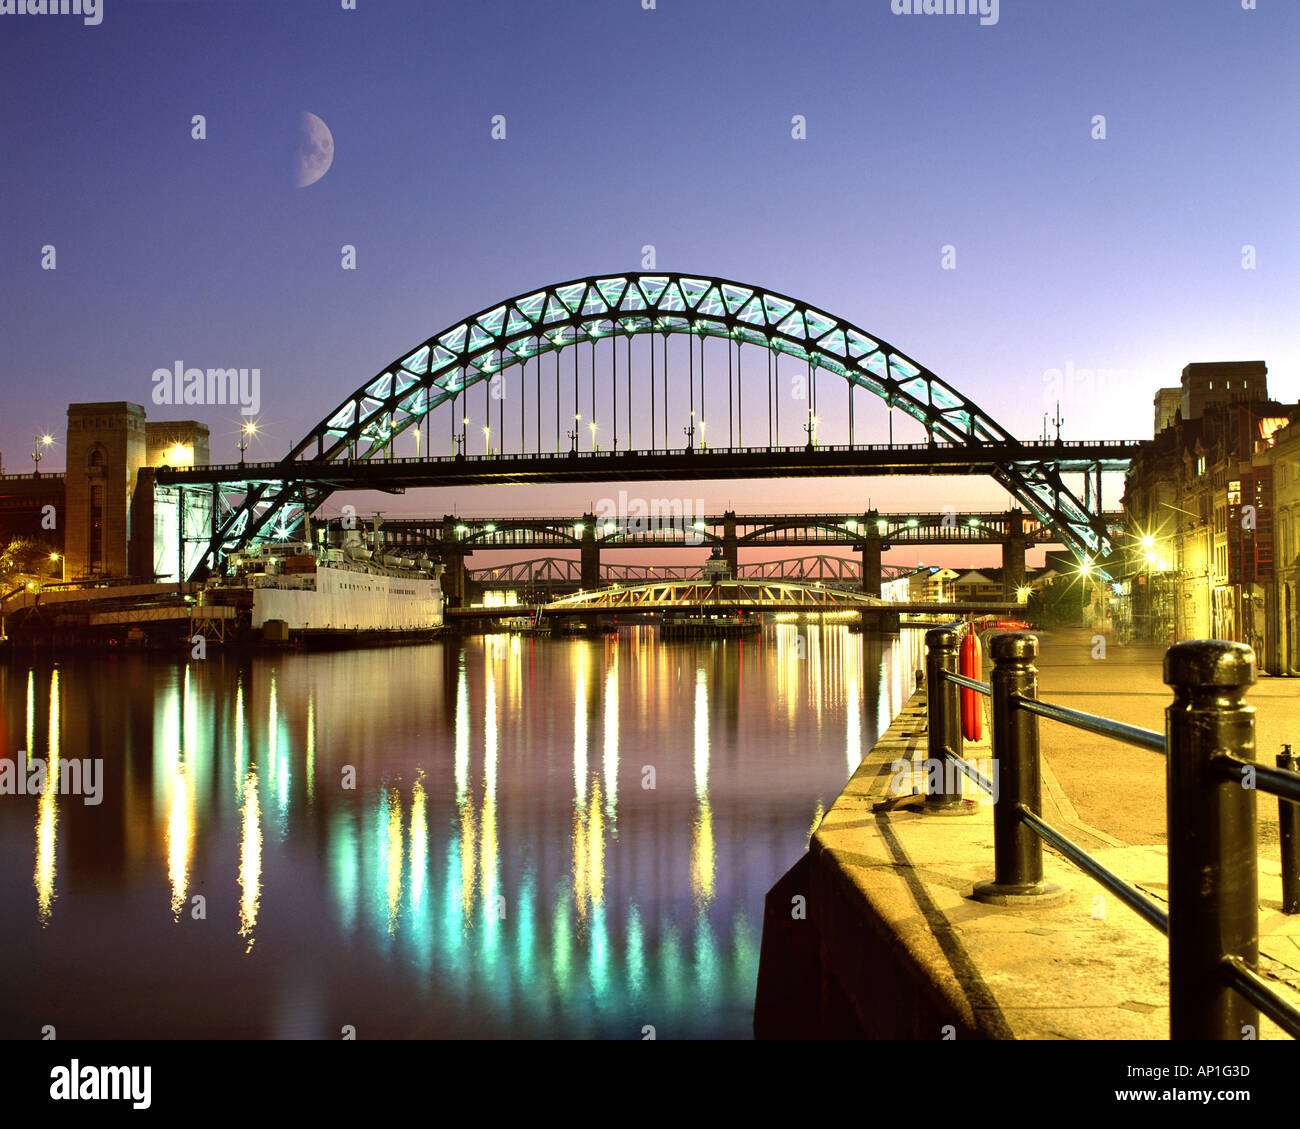 GB - NEWCASTLE: Tyne Bridge bei Nacht Stockbild